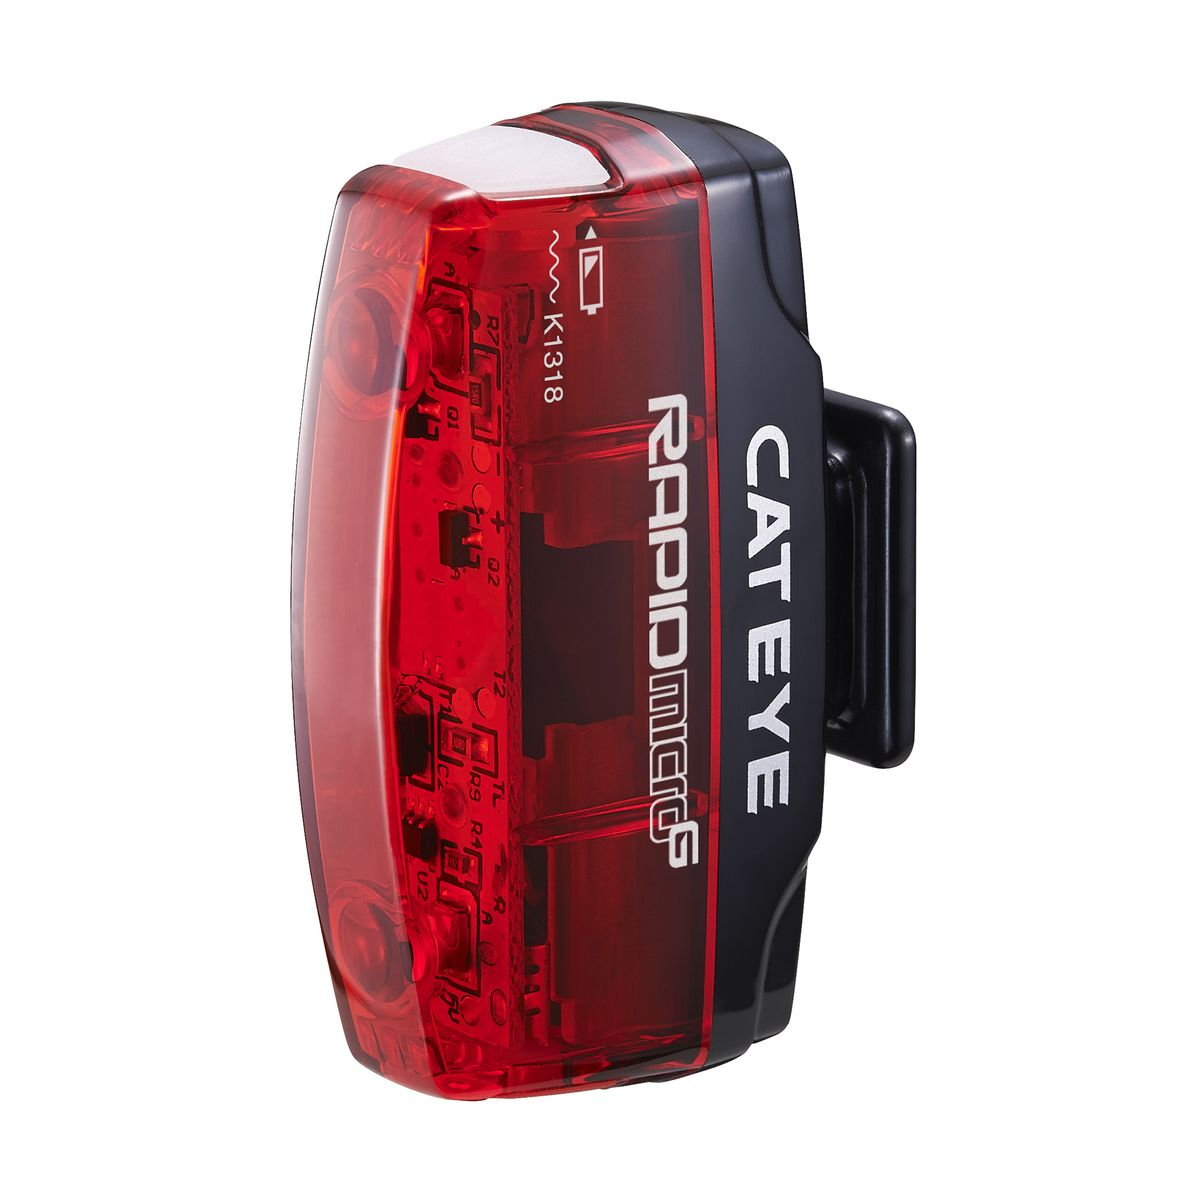 Rapid Micro G TL-LD620G rear light